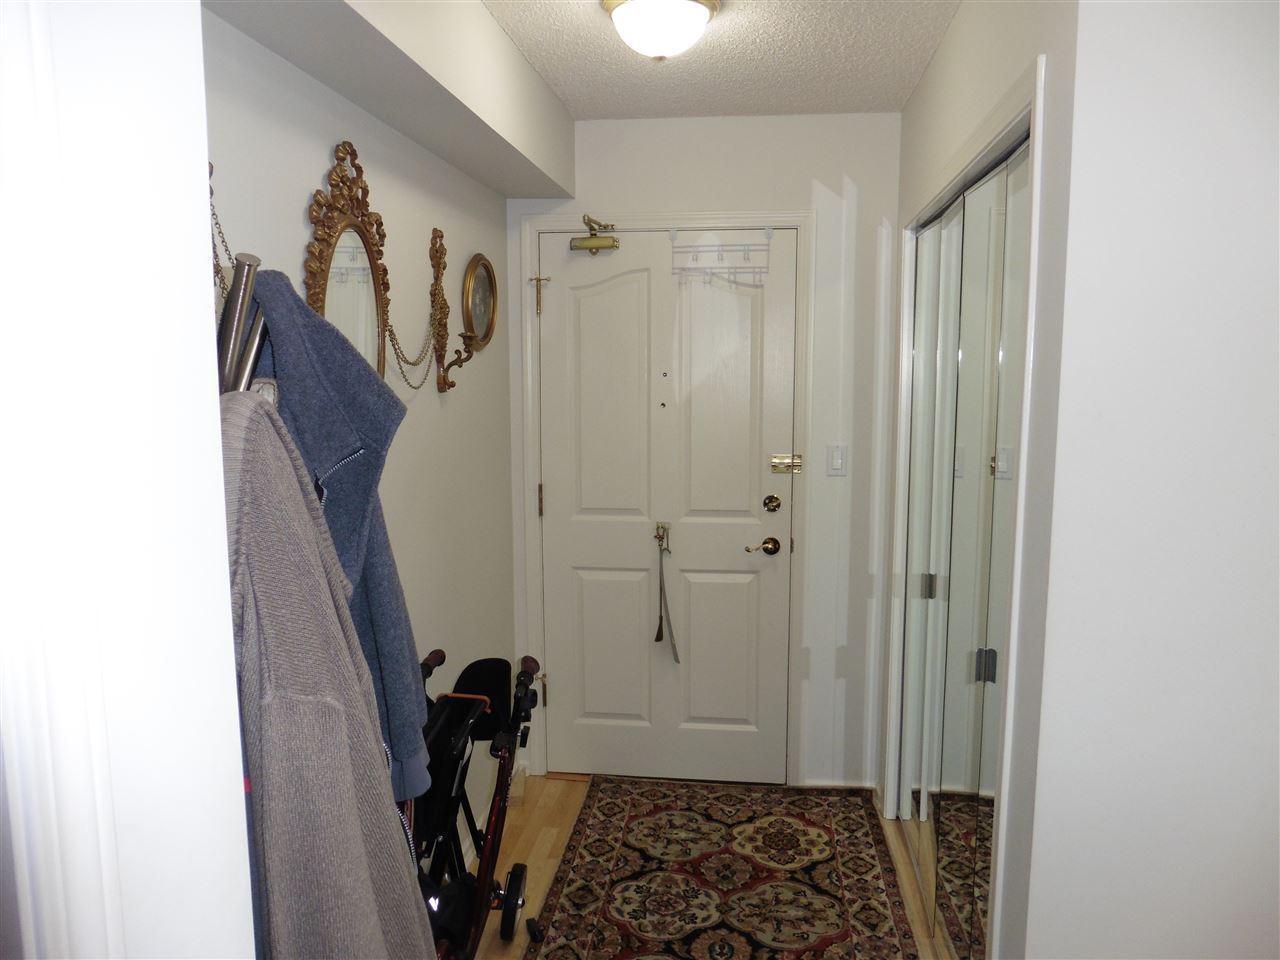 """Photo 17: Photos: 705 728 PRINCESS Street in New Westminster: Uptown NW Condo for sale in """"PRINCESS TOWER"""" : MLS®# R2437425"""